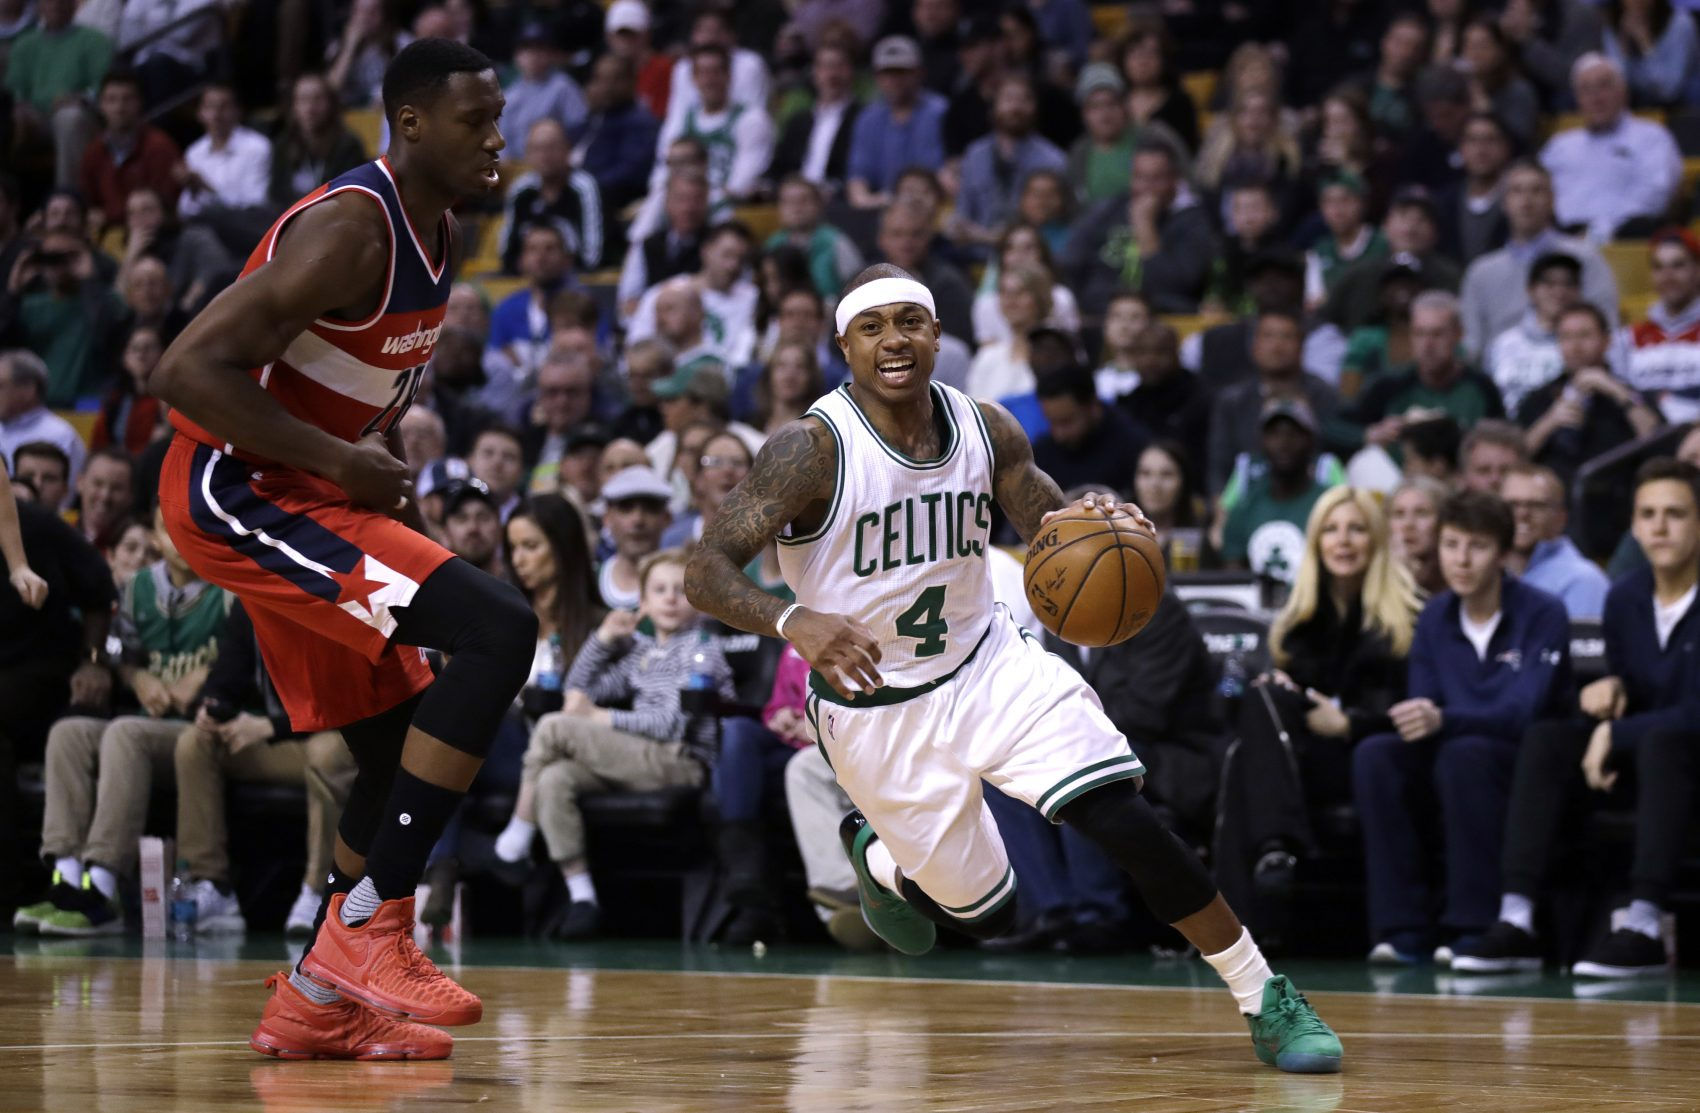 Boston Celtics guard Isaiah Thomas drives to the basket against the Wizards in March. (Charles Krupa/AP)